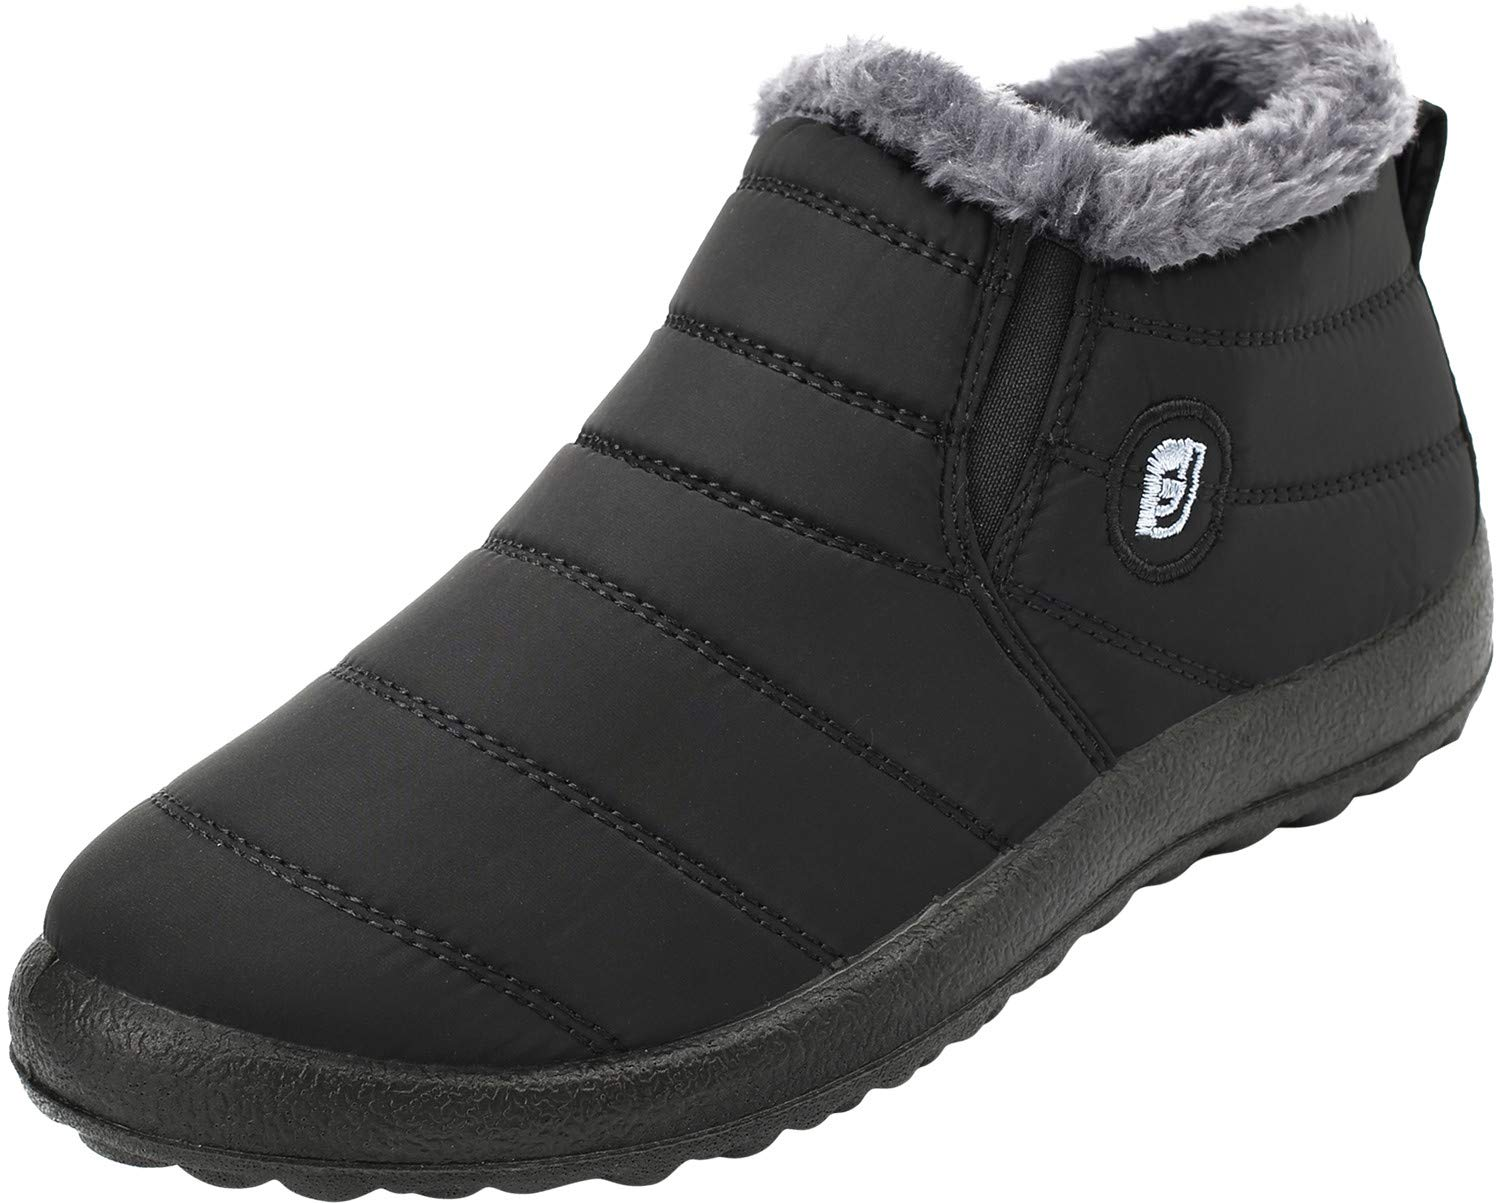 FEETCITY Mens Anti-Slip Snow Boots with Fully Fur Lined High Top/Low Top Black 11 D(M) US